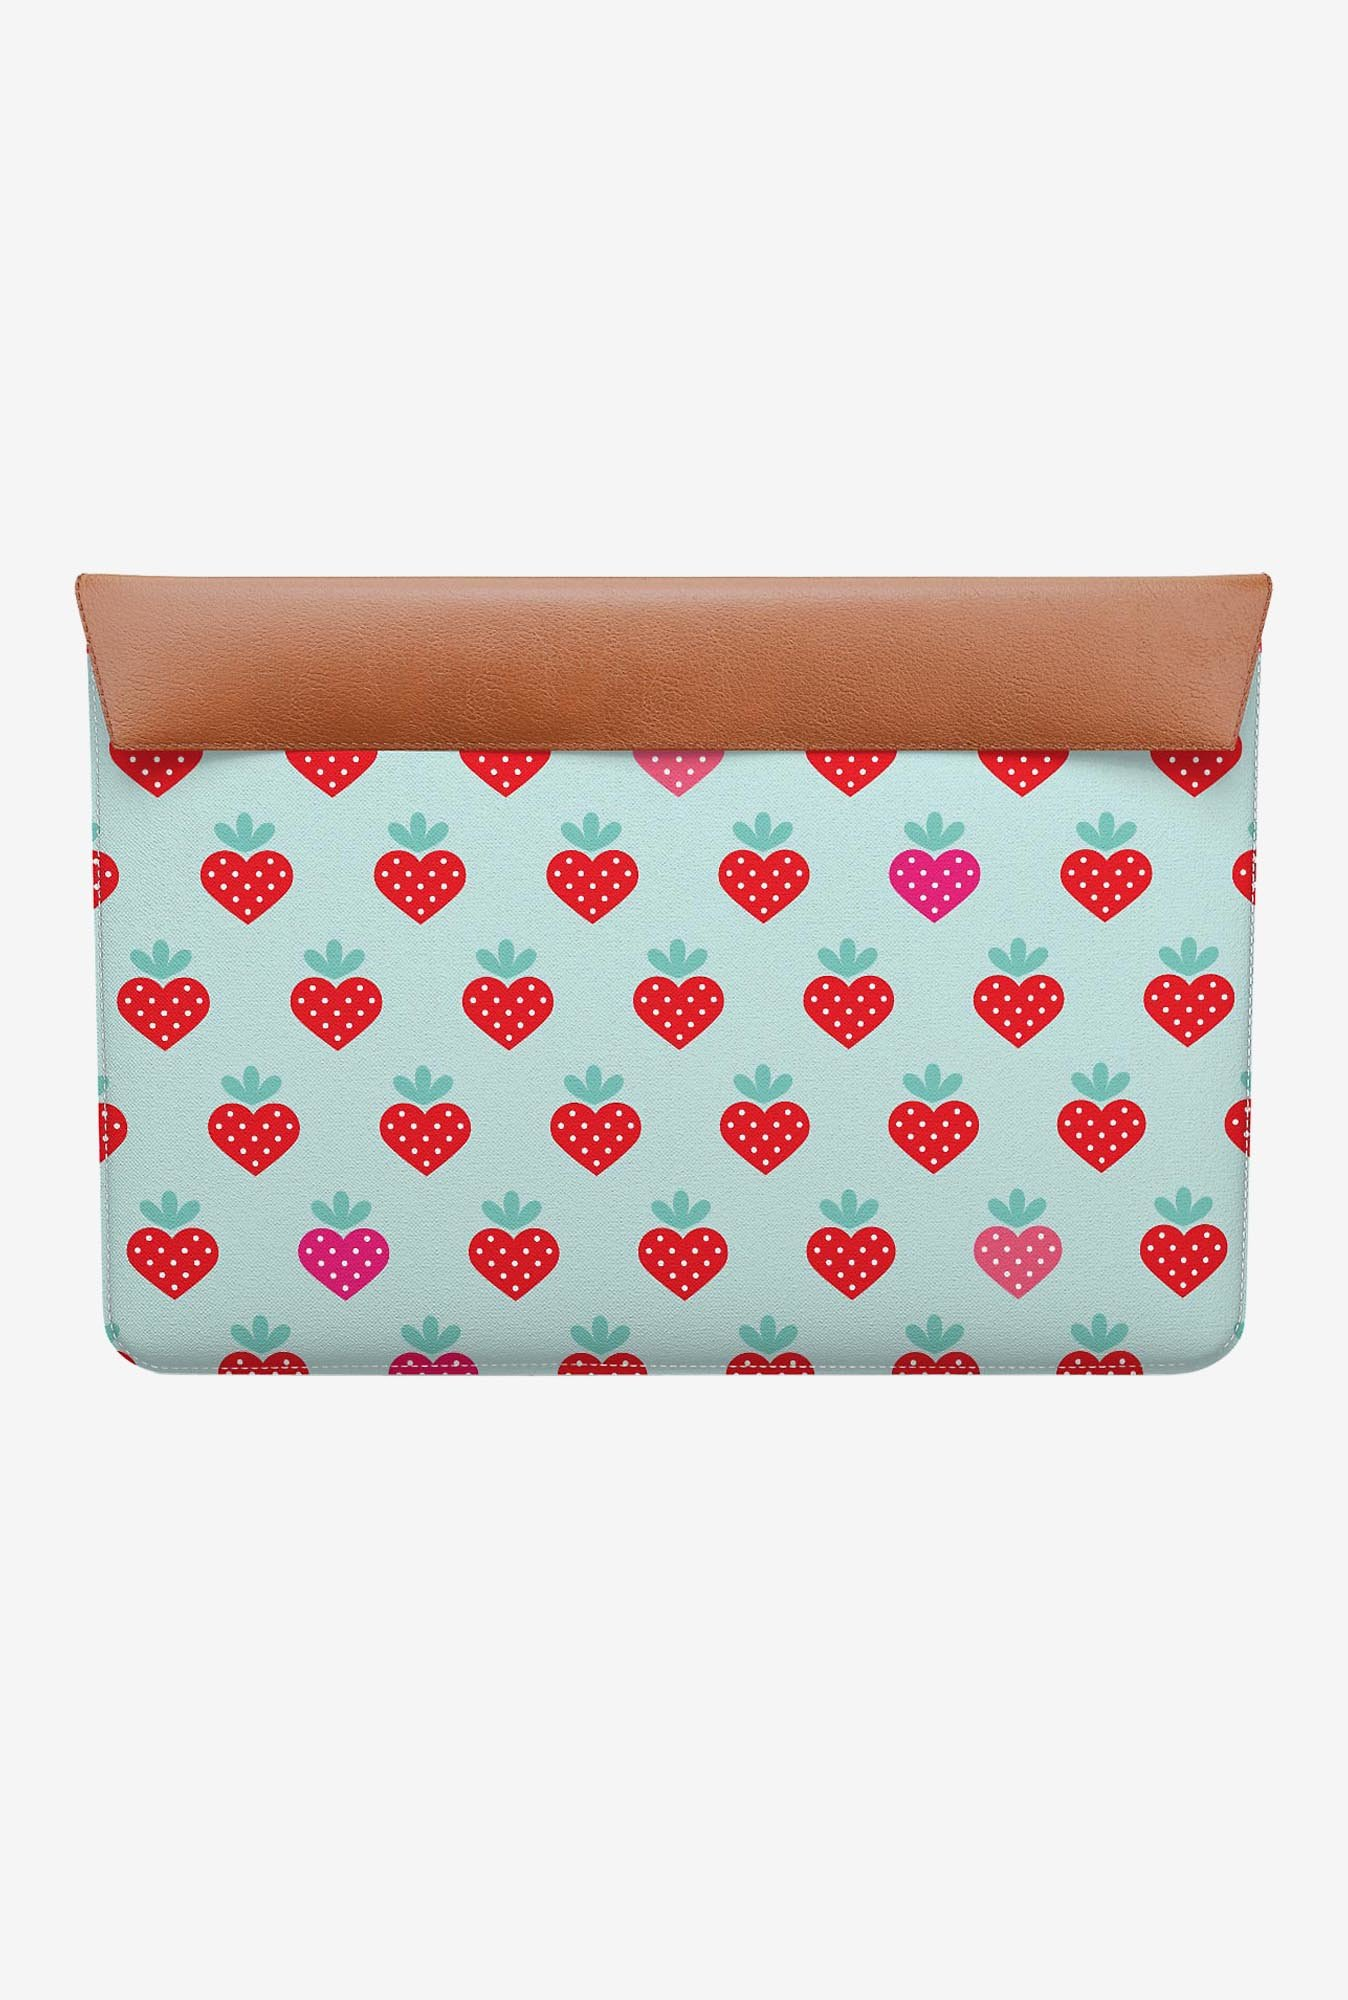 "DailyObjects Strawberry MacBook Pro 15"" Envelope Sleeve"